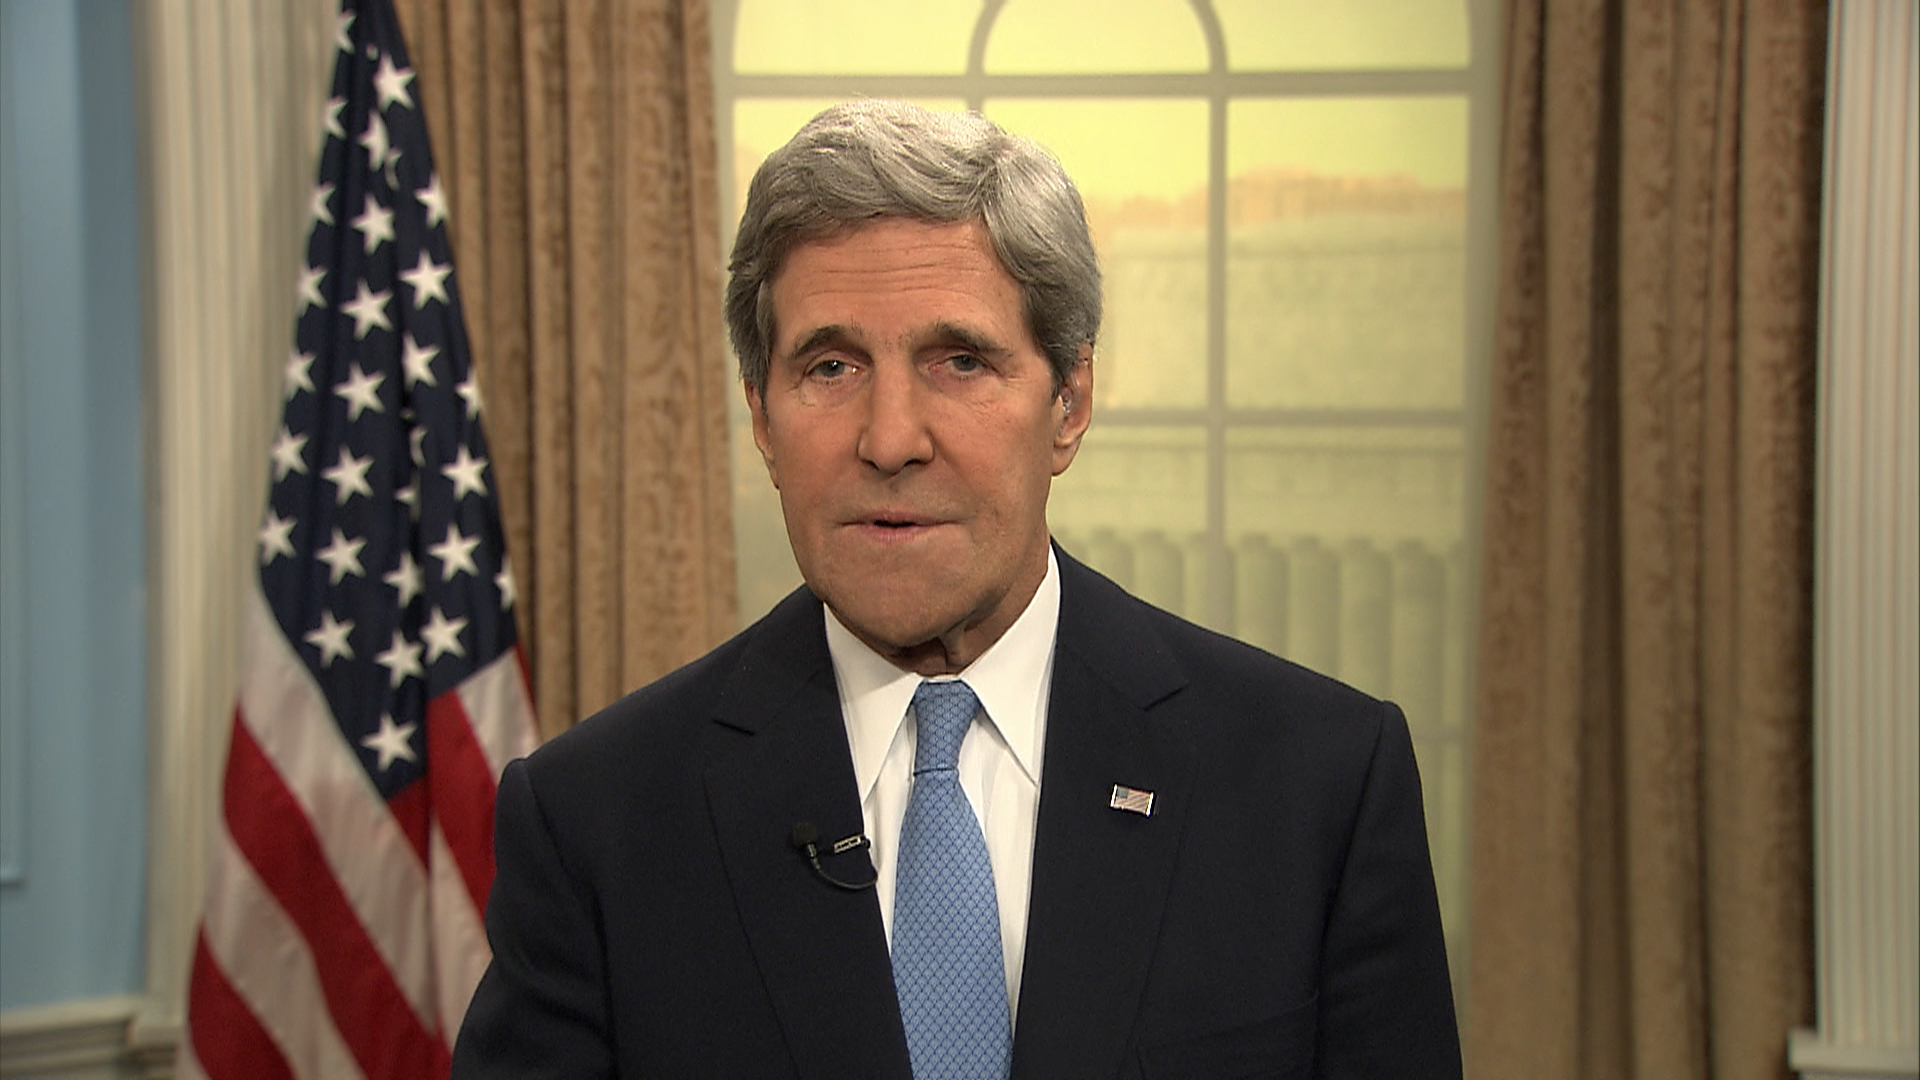 Kerry: 'We're still hopeful' on Iranian talks